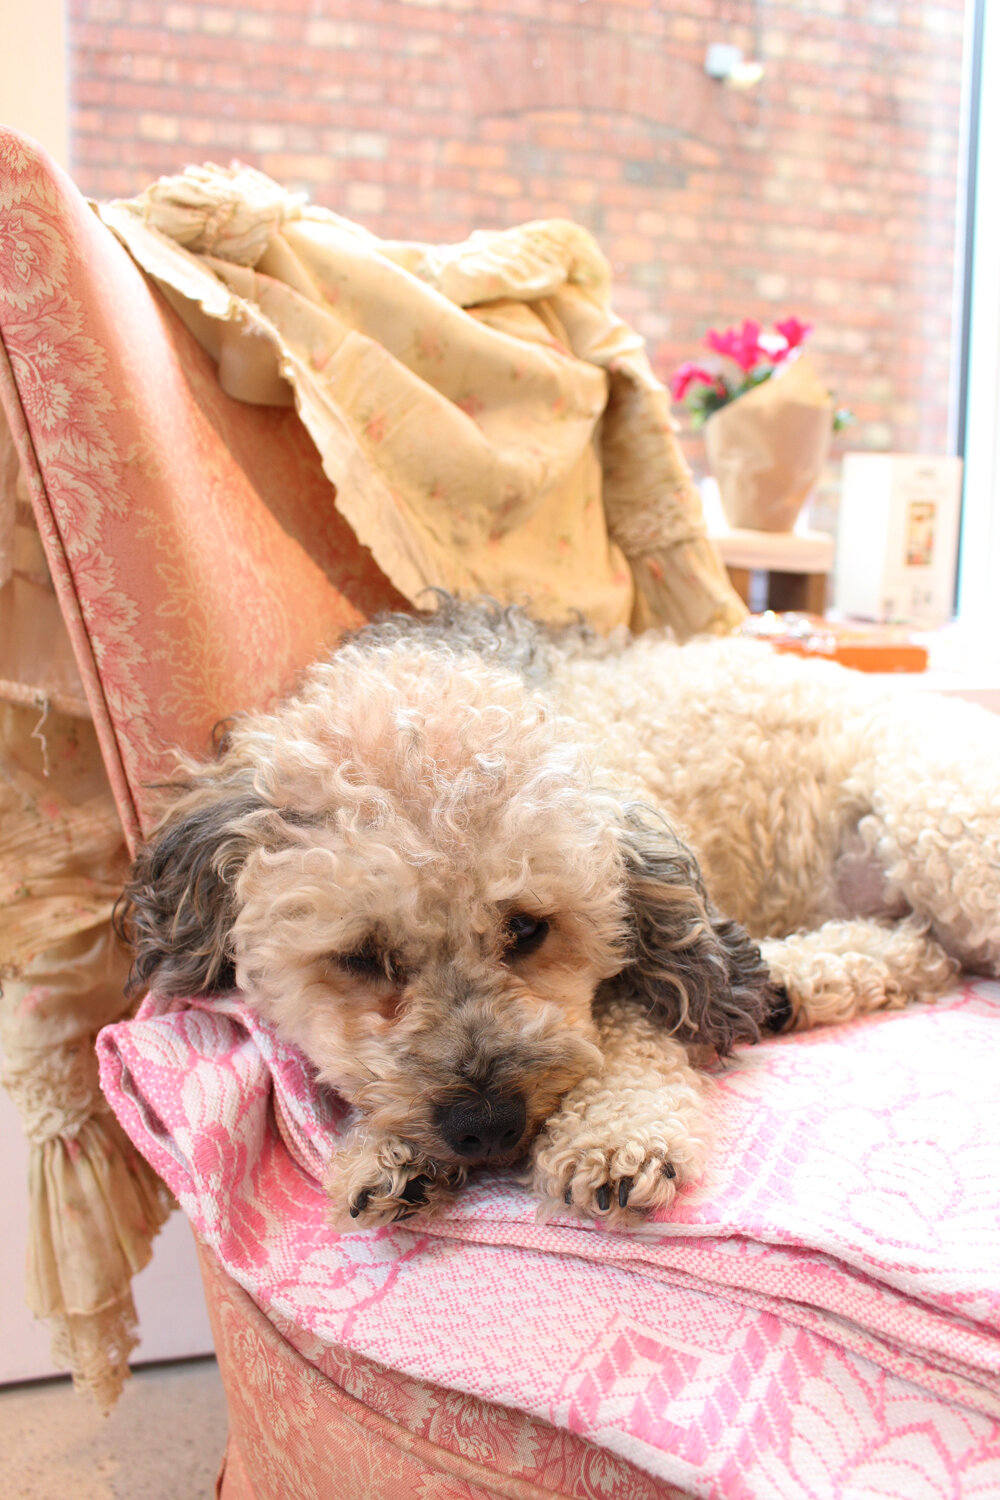 Milligans adorable dog on the chair.JPG